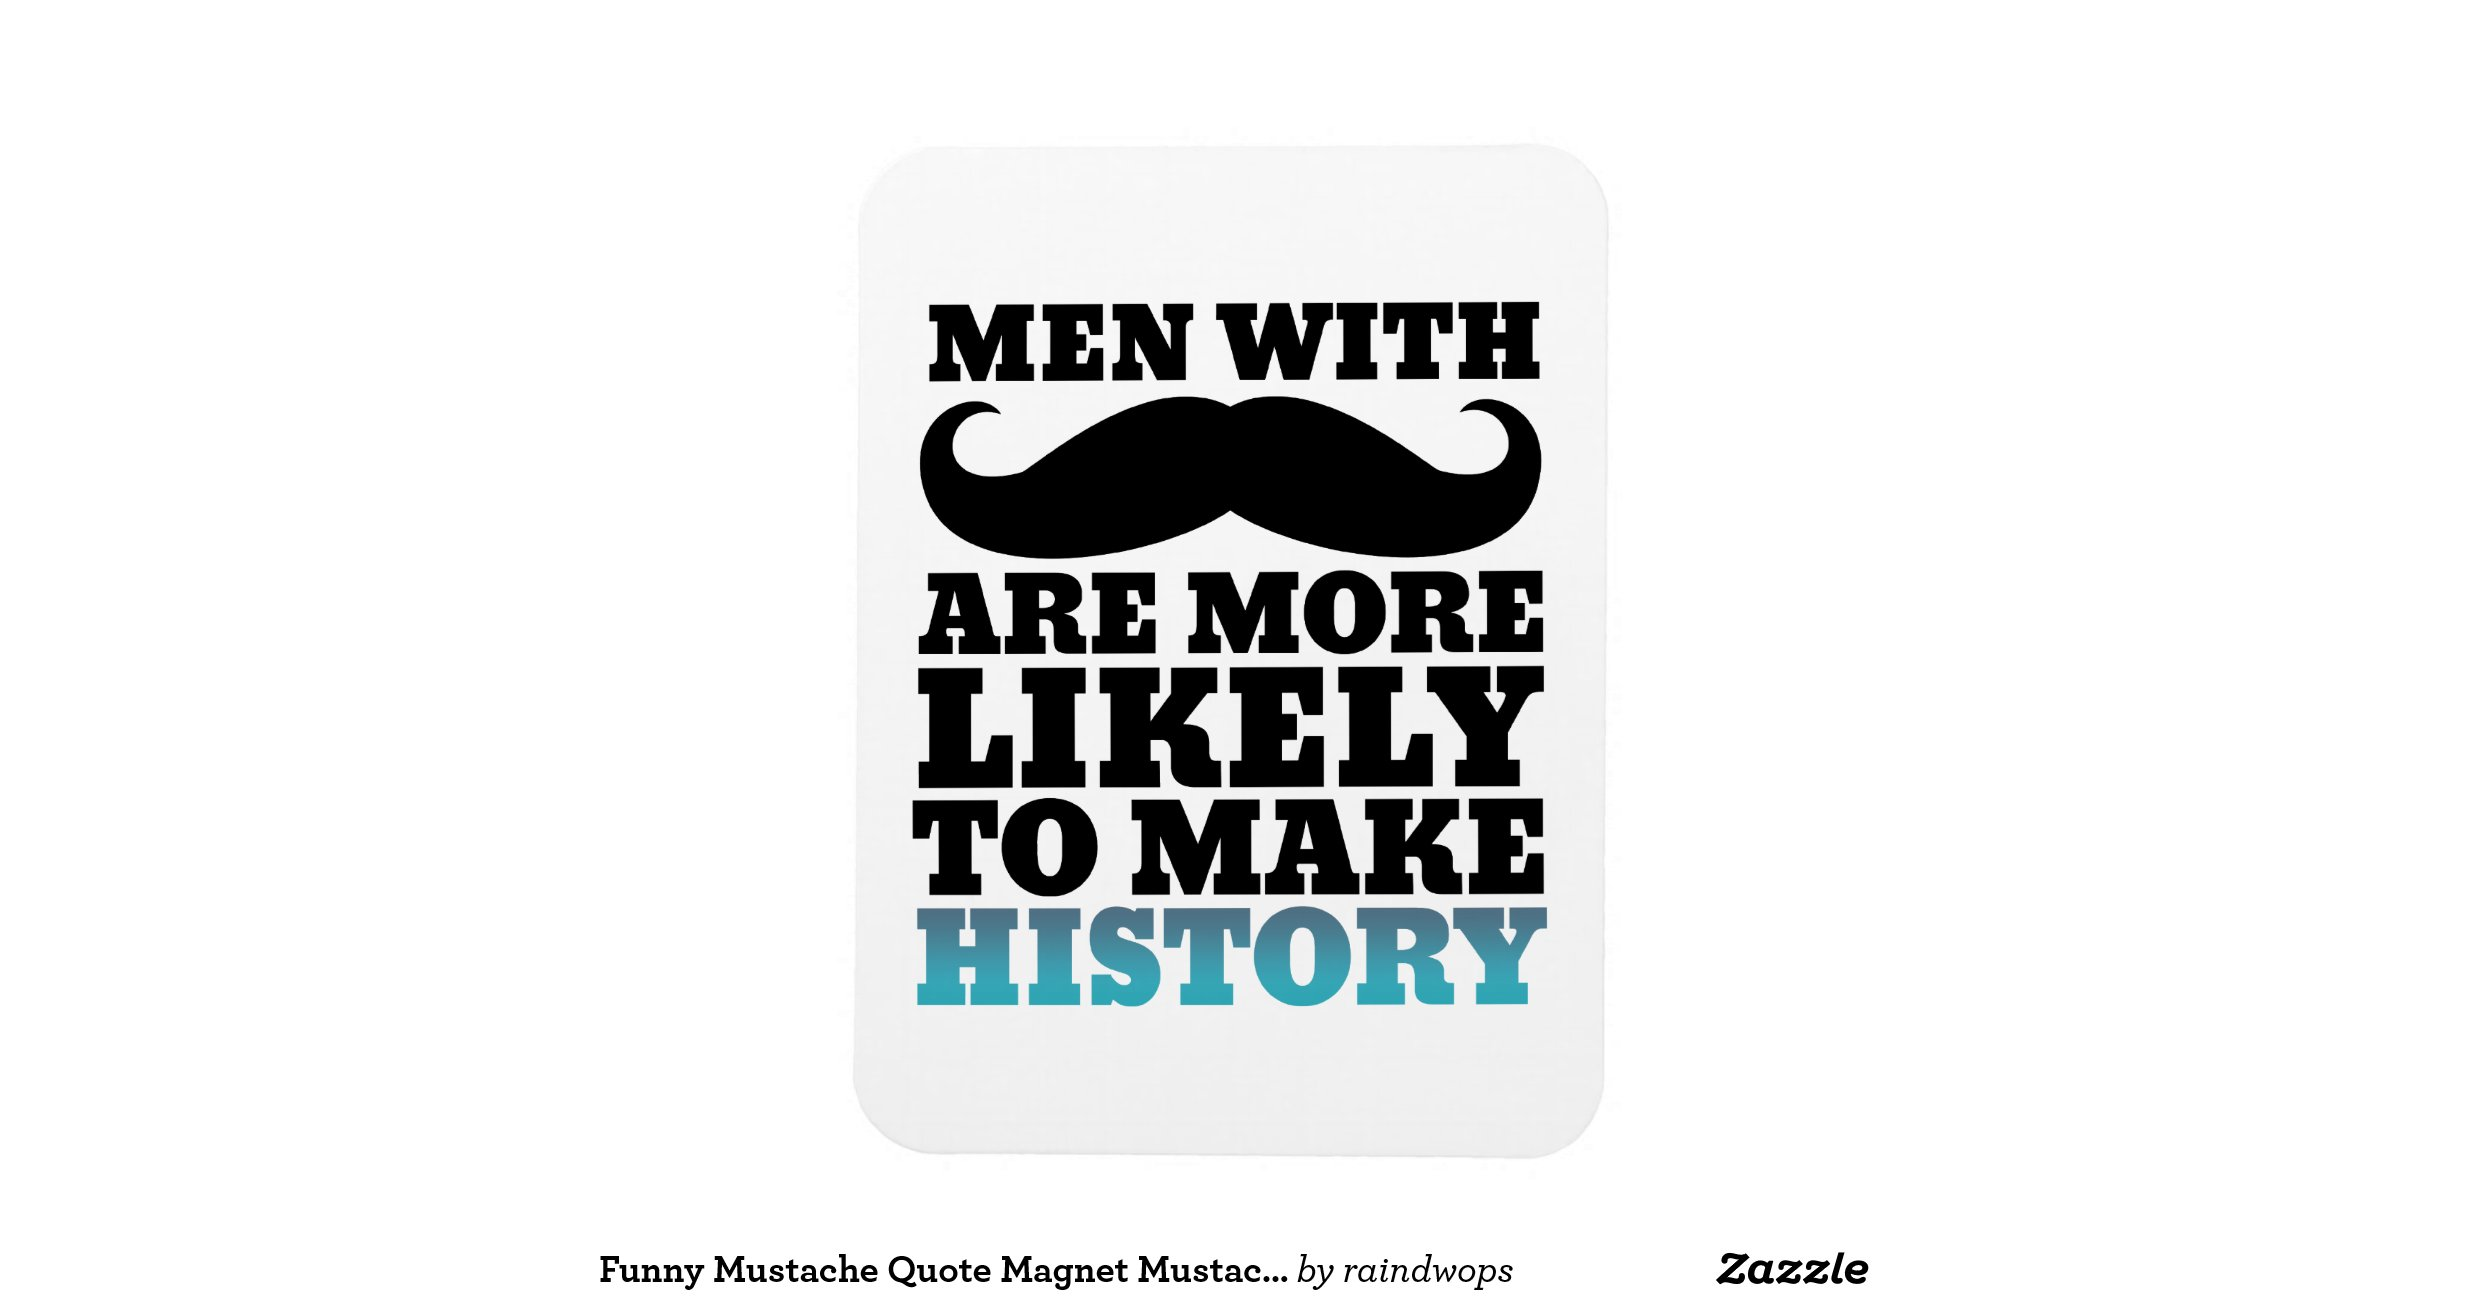 Funny_mustache_quote_magnet_mustache_makes_history